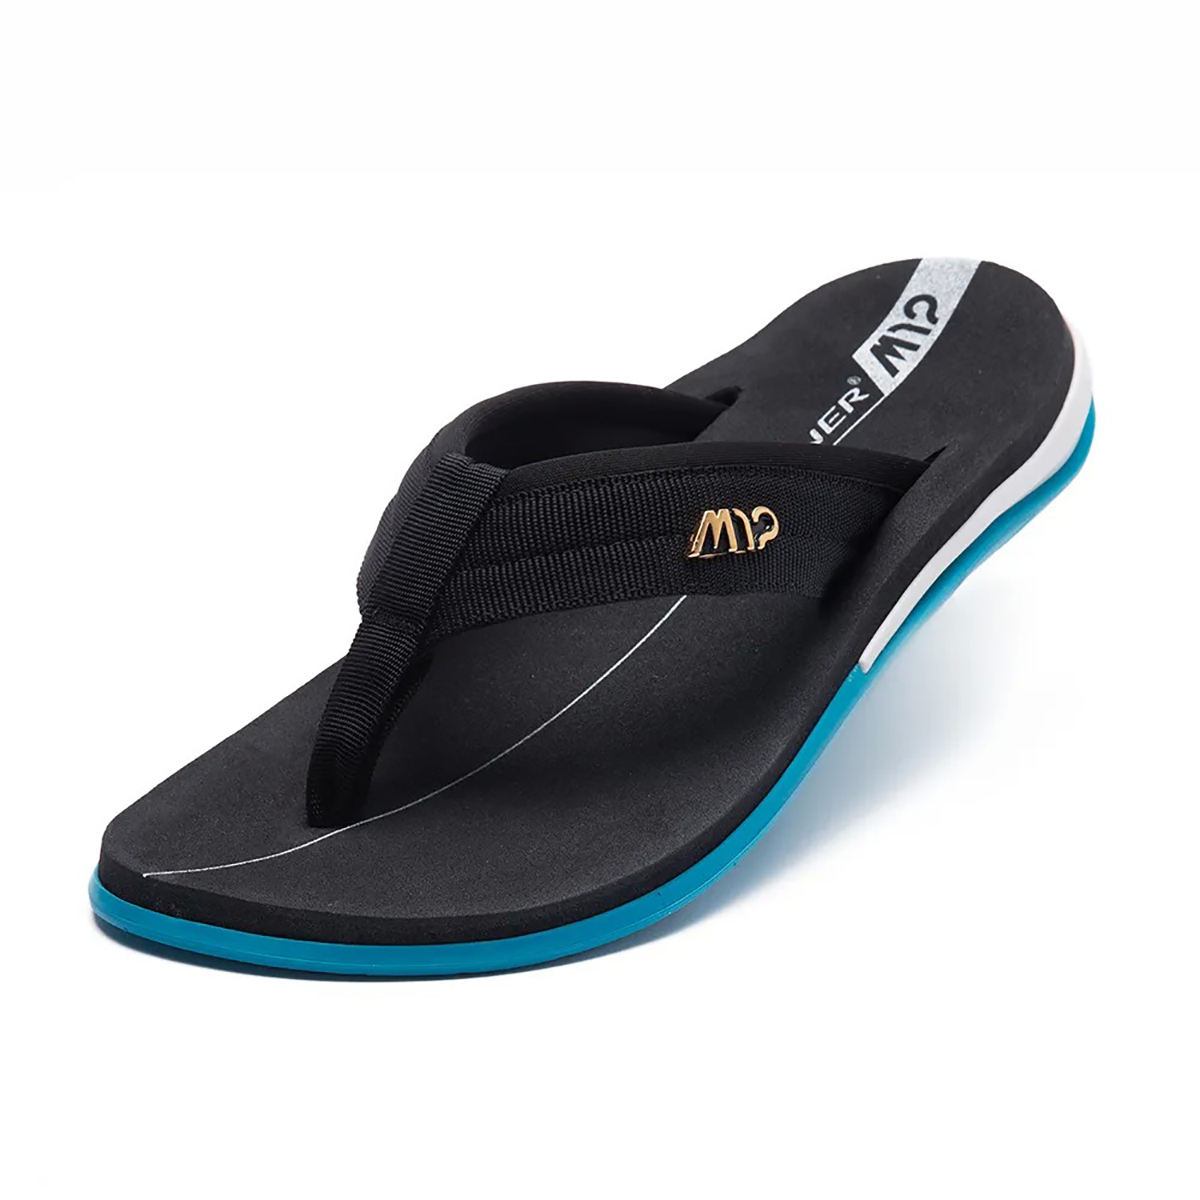 Chinelo Kenner Action Gel M12 Masculino - Preto e Azul